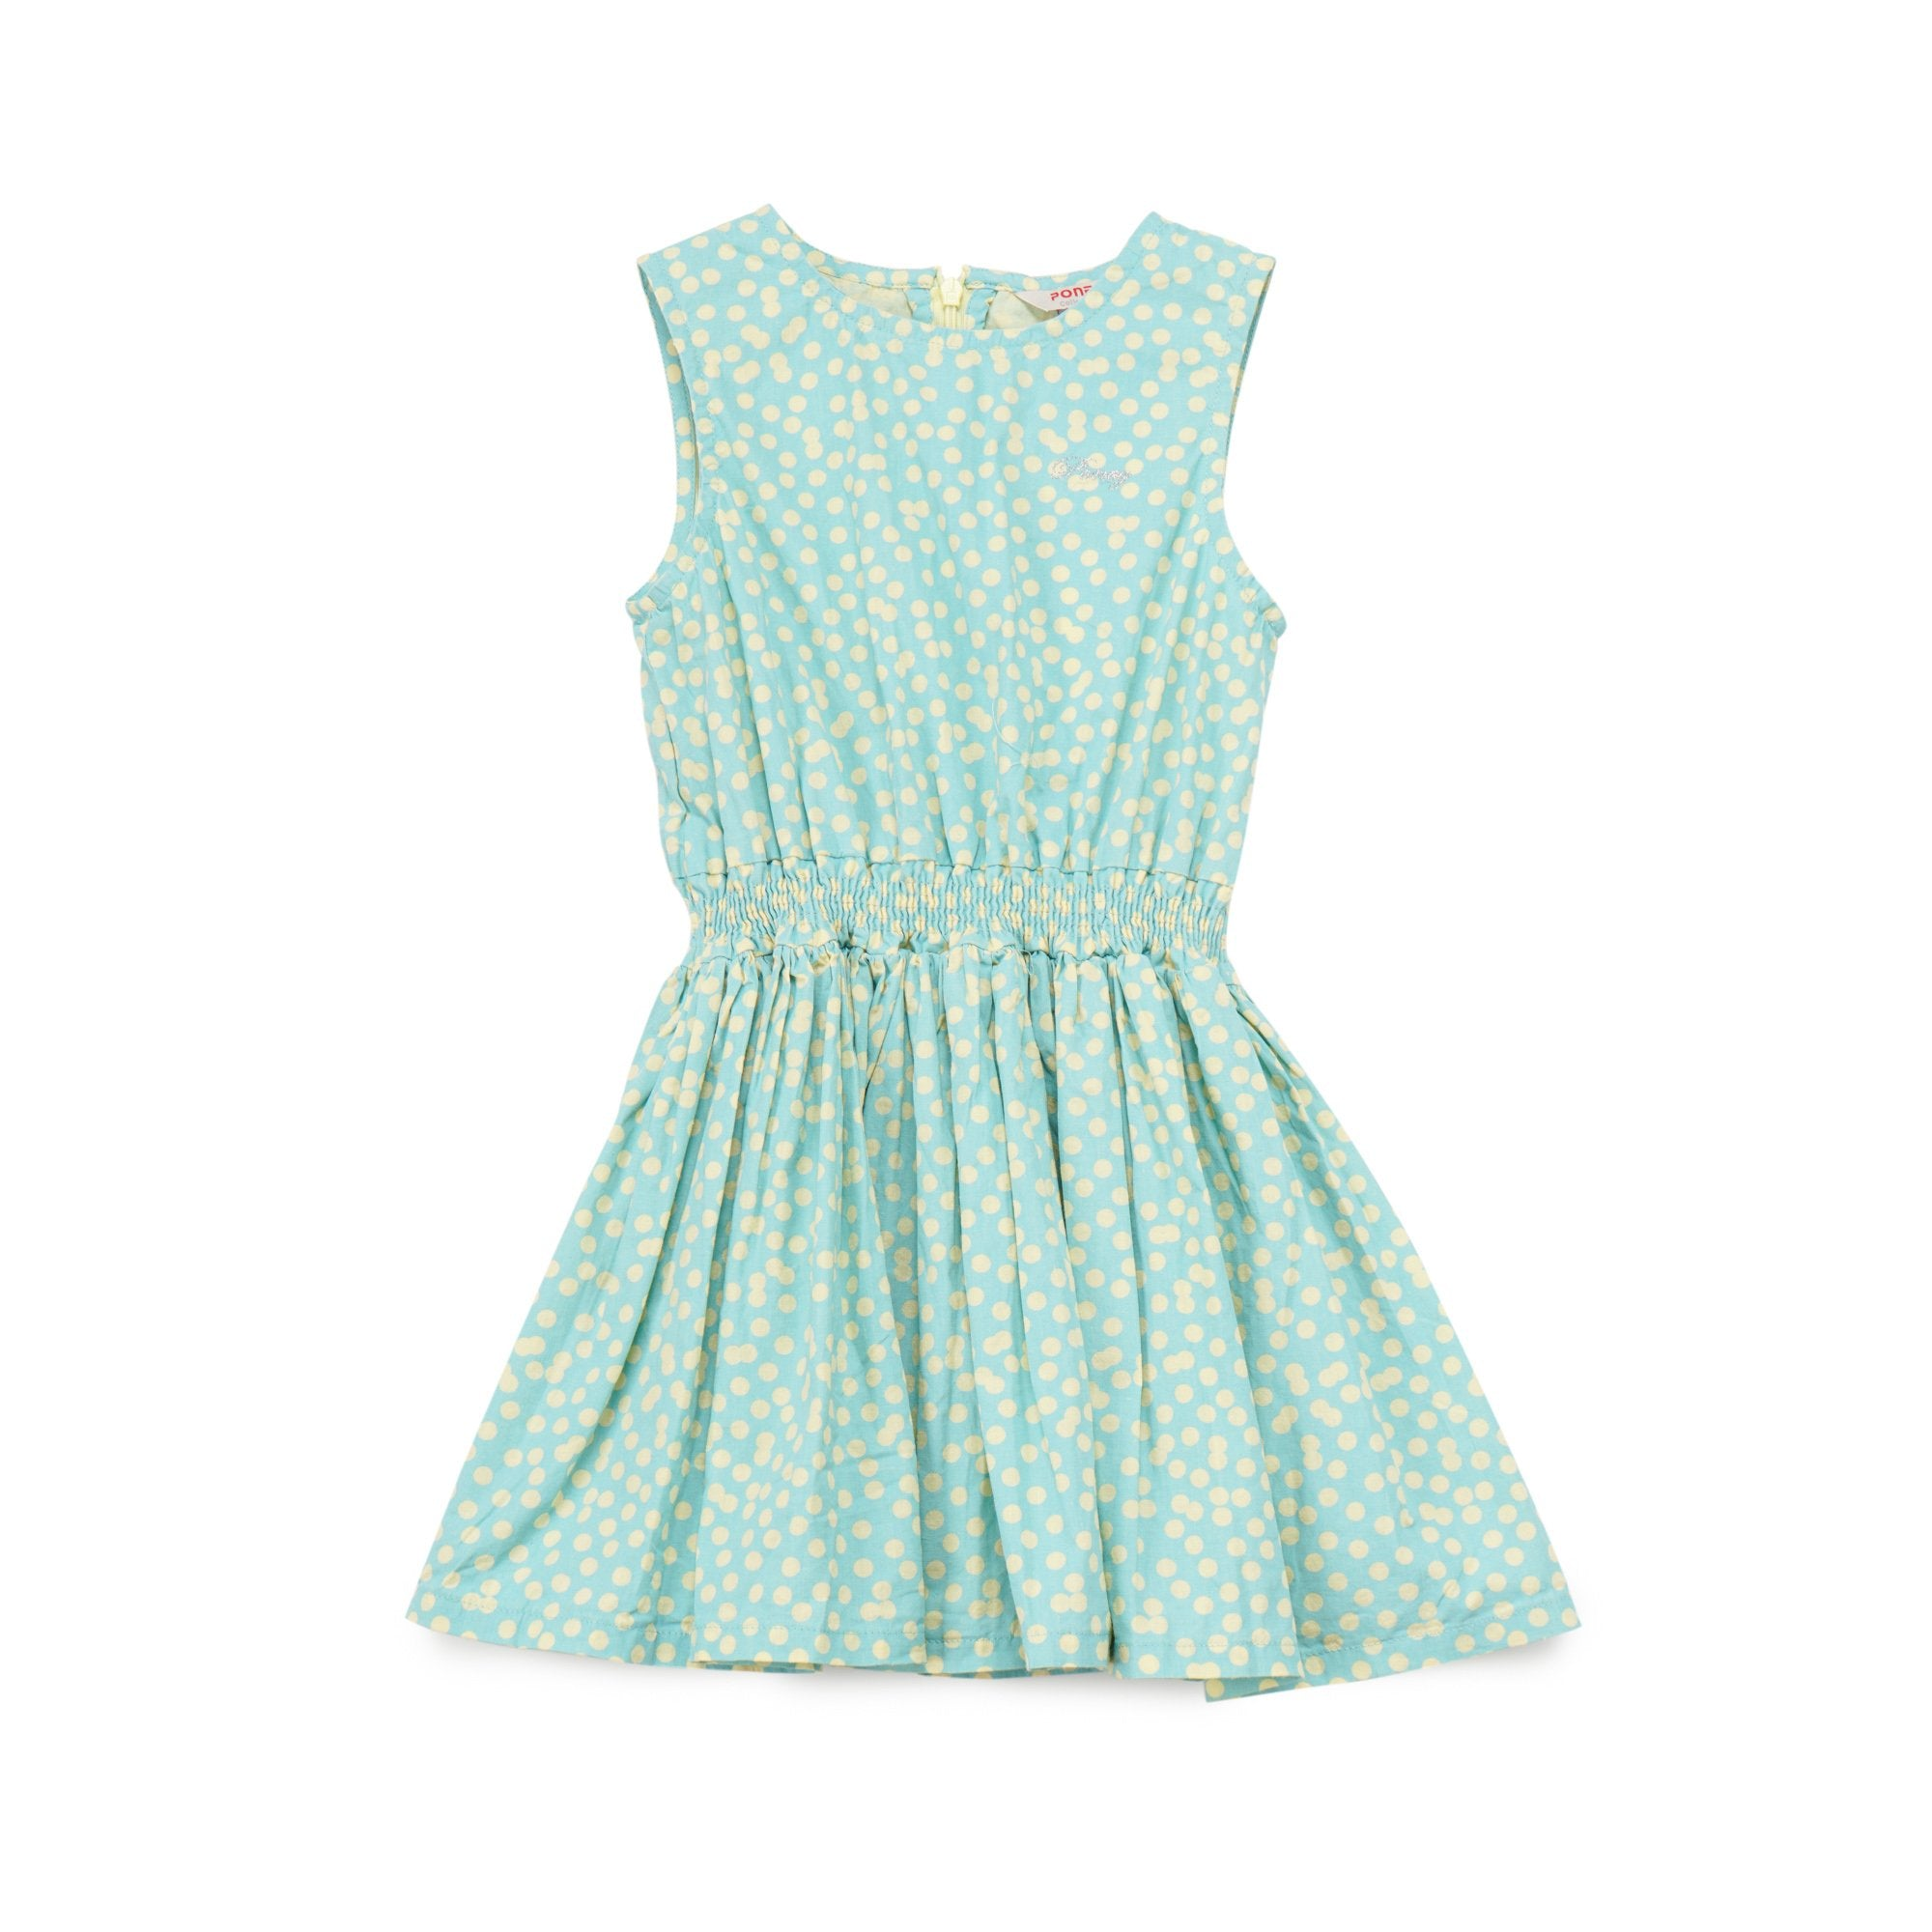 Poney Girls Sleeveless Dress 8329 (6mths-12yrs)